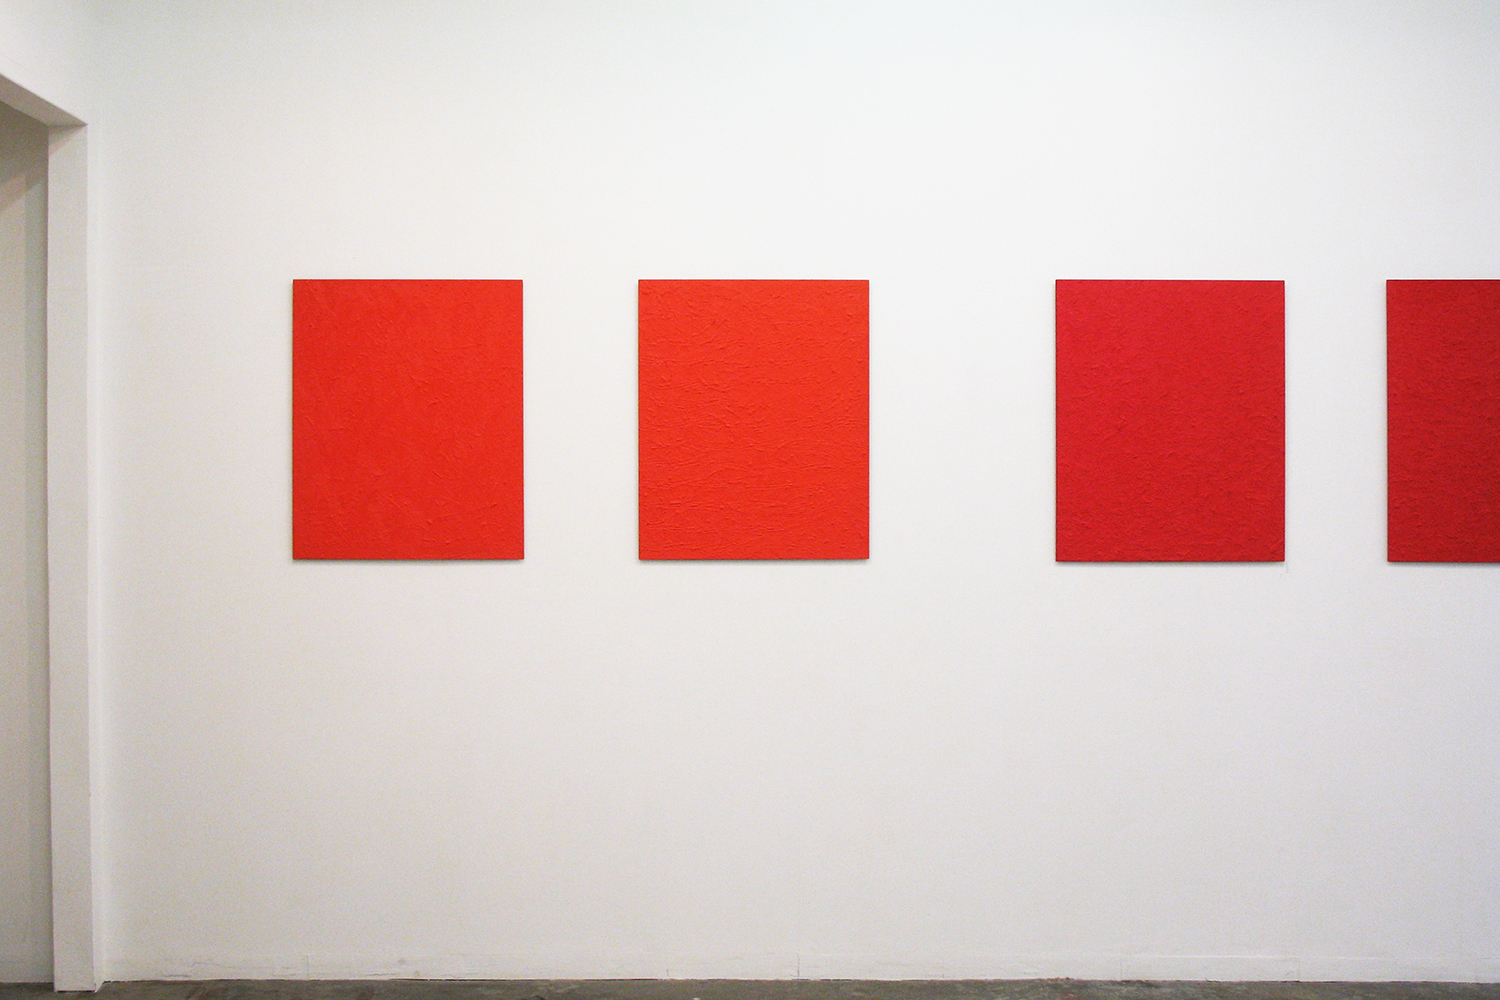 Installation View: Untitled - Gold Red(金赤) (left 2 pieces) & Untitled - Beni Red(紅赤)(right 2 pieces)<br> Oil on aluminum|727 x 606 mm|2012 each